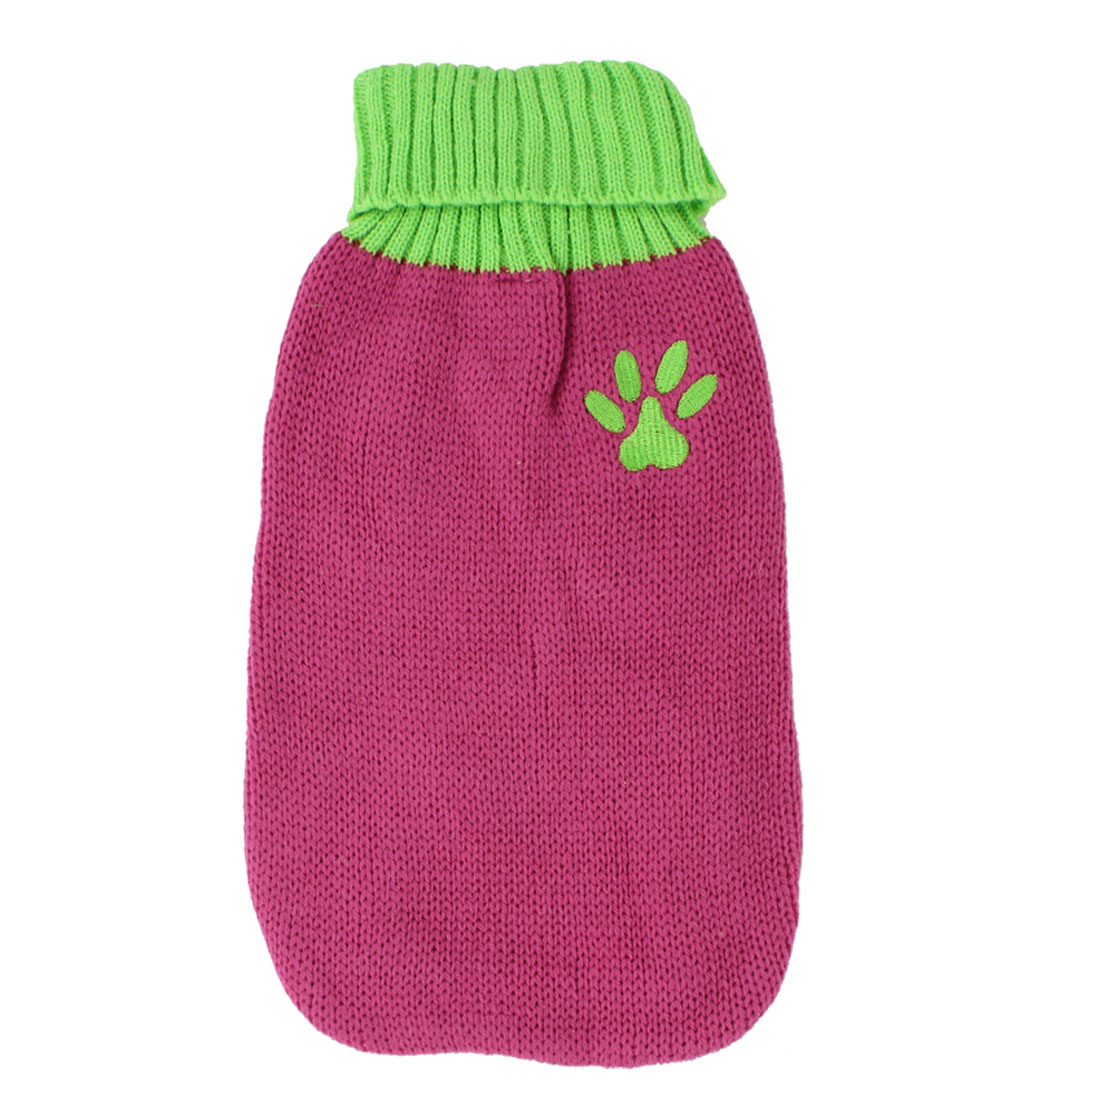 Pet Dog Doggy Ribbed Cuff Knitwear Turtleneck Apparel Sweater Fuchsia Yellow Green Size XS